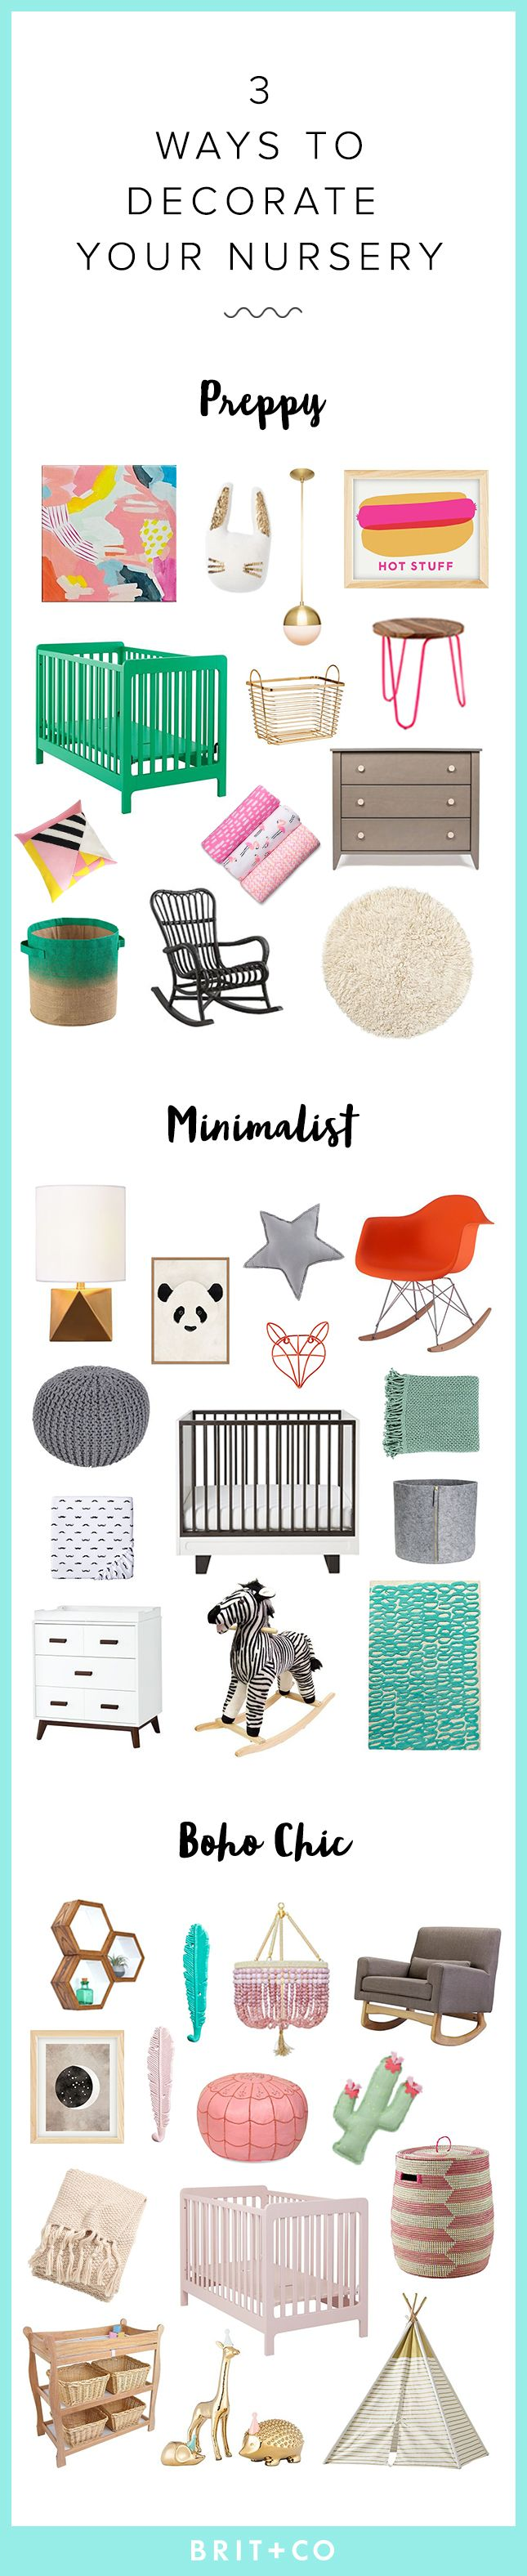 23 best Nursery Inspiration images on Pinterest | Babies nursery ...